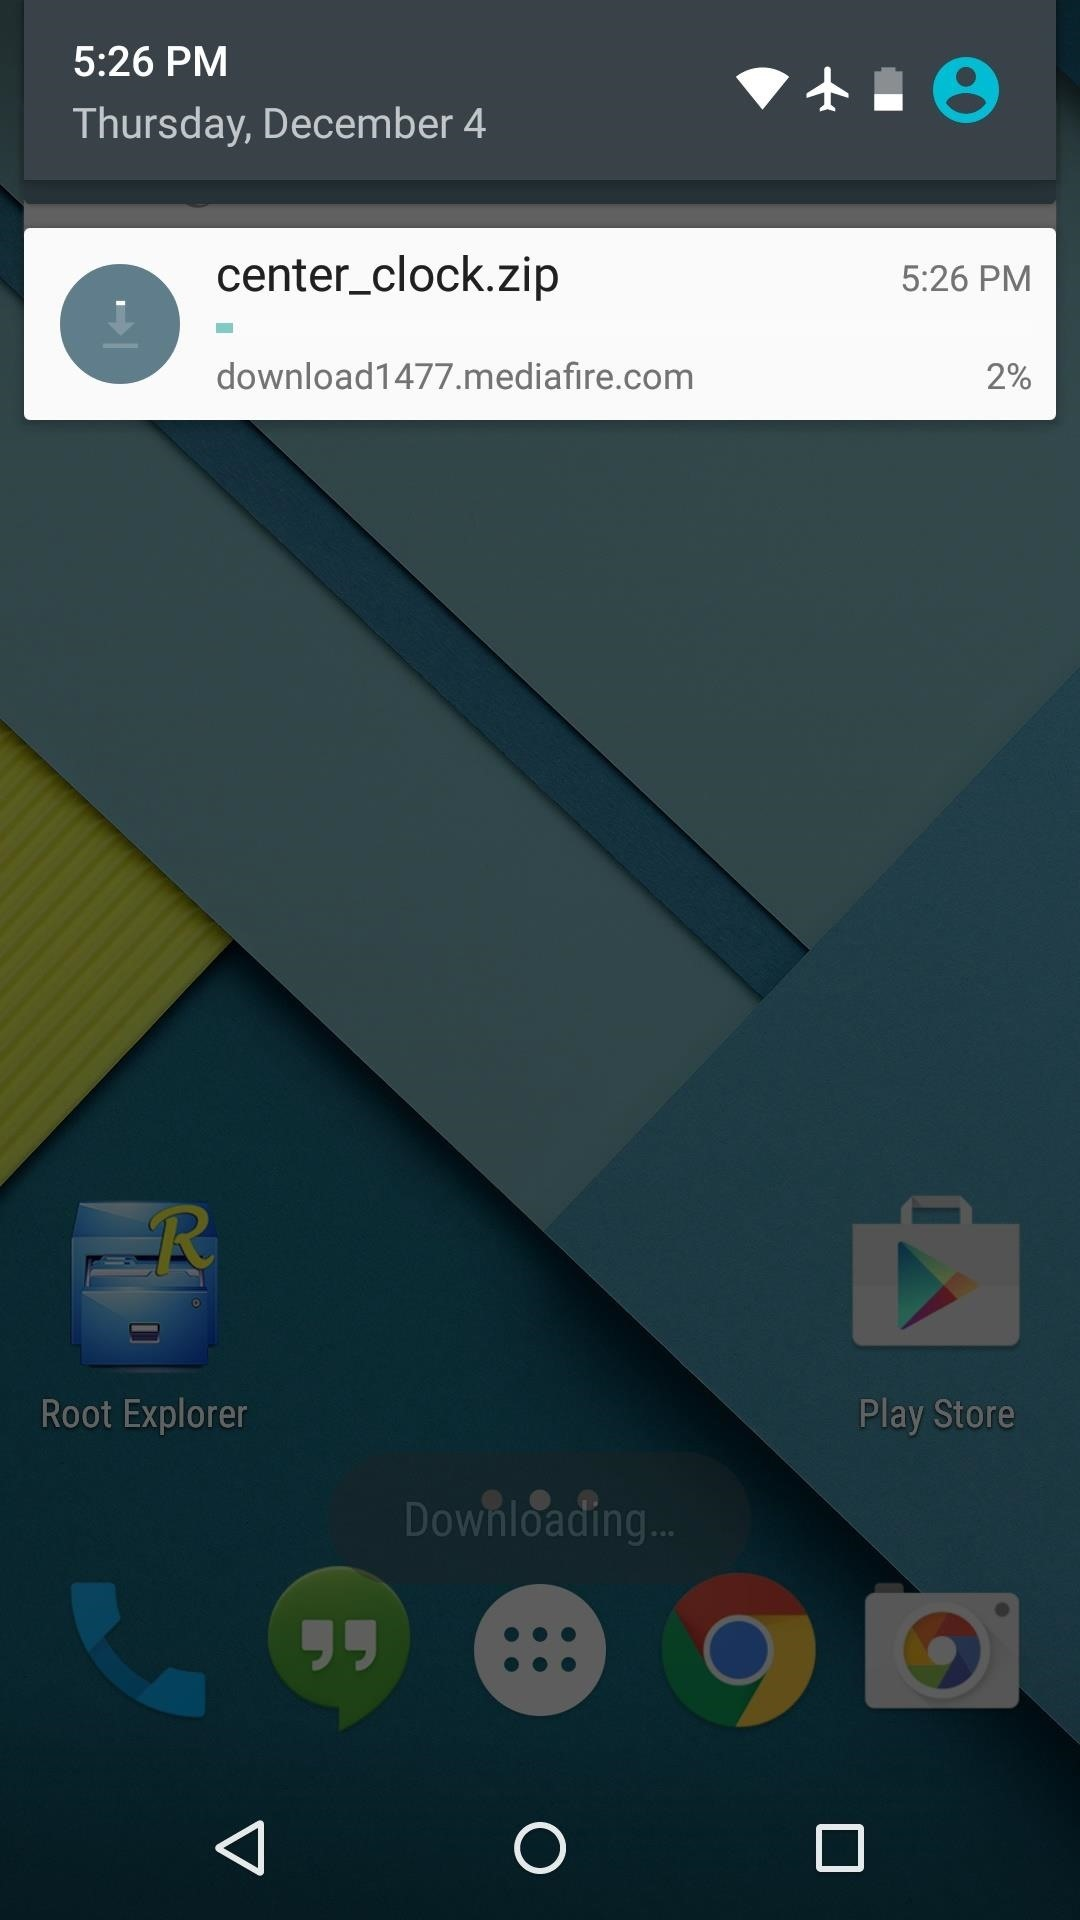 How to Center the Status Bar Clock in Android Lollipop